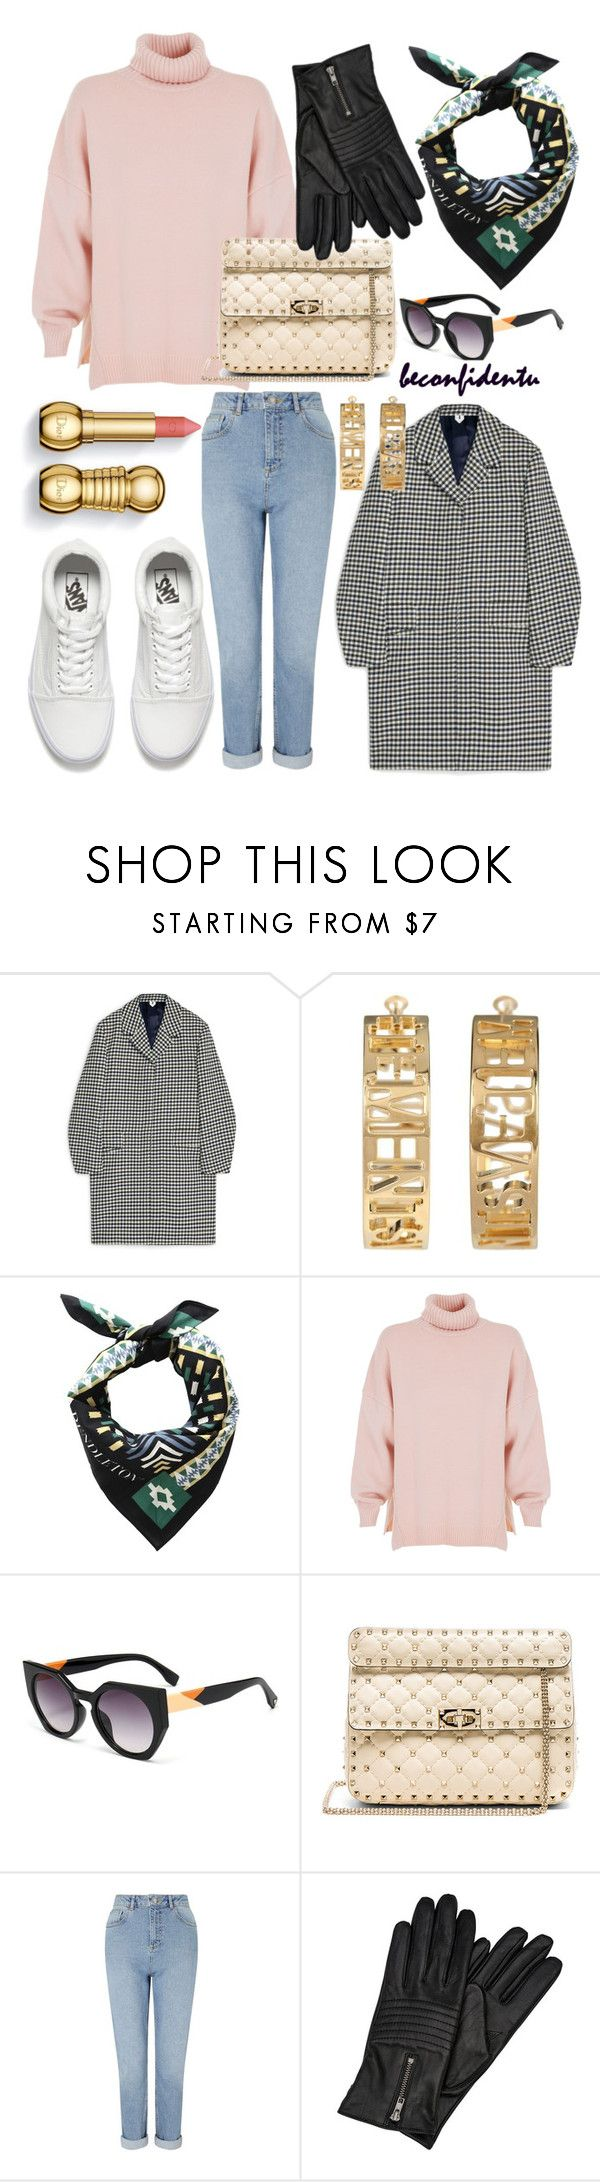 """""""Beauty Lil Girl"""" by beconfidentu on Polyvore featuring Vetements, Pendleton, TIBI, Valentino, Miss Selfridge, Vans, shopping, comfy, sneakers and womenswear"""